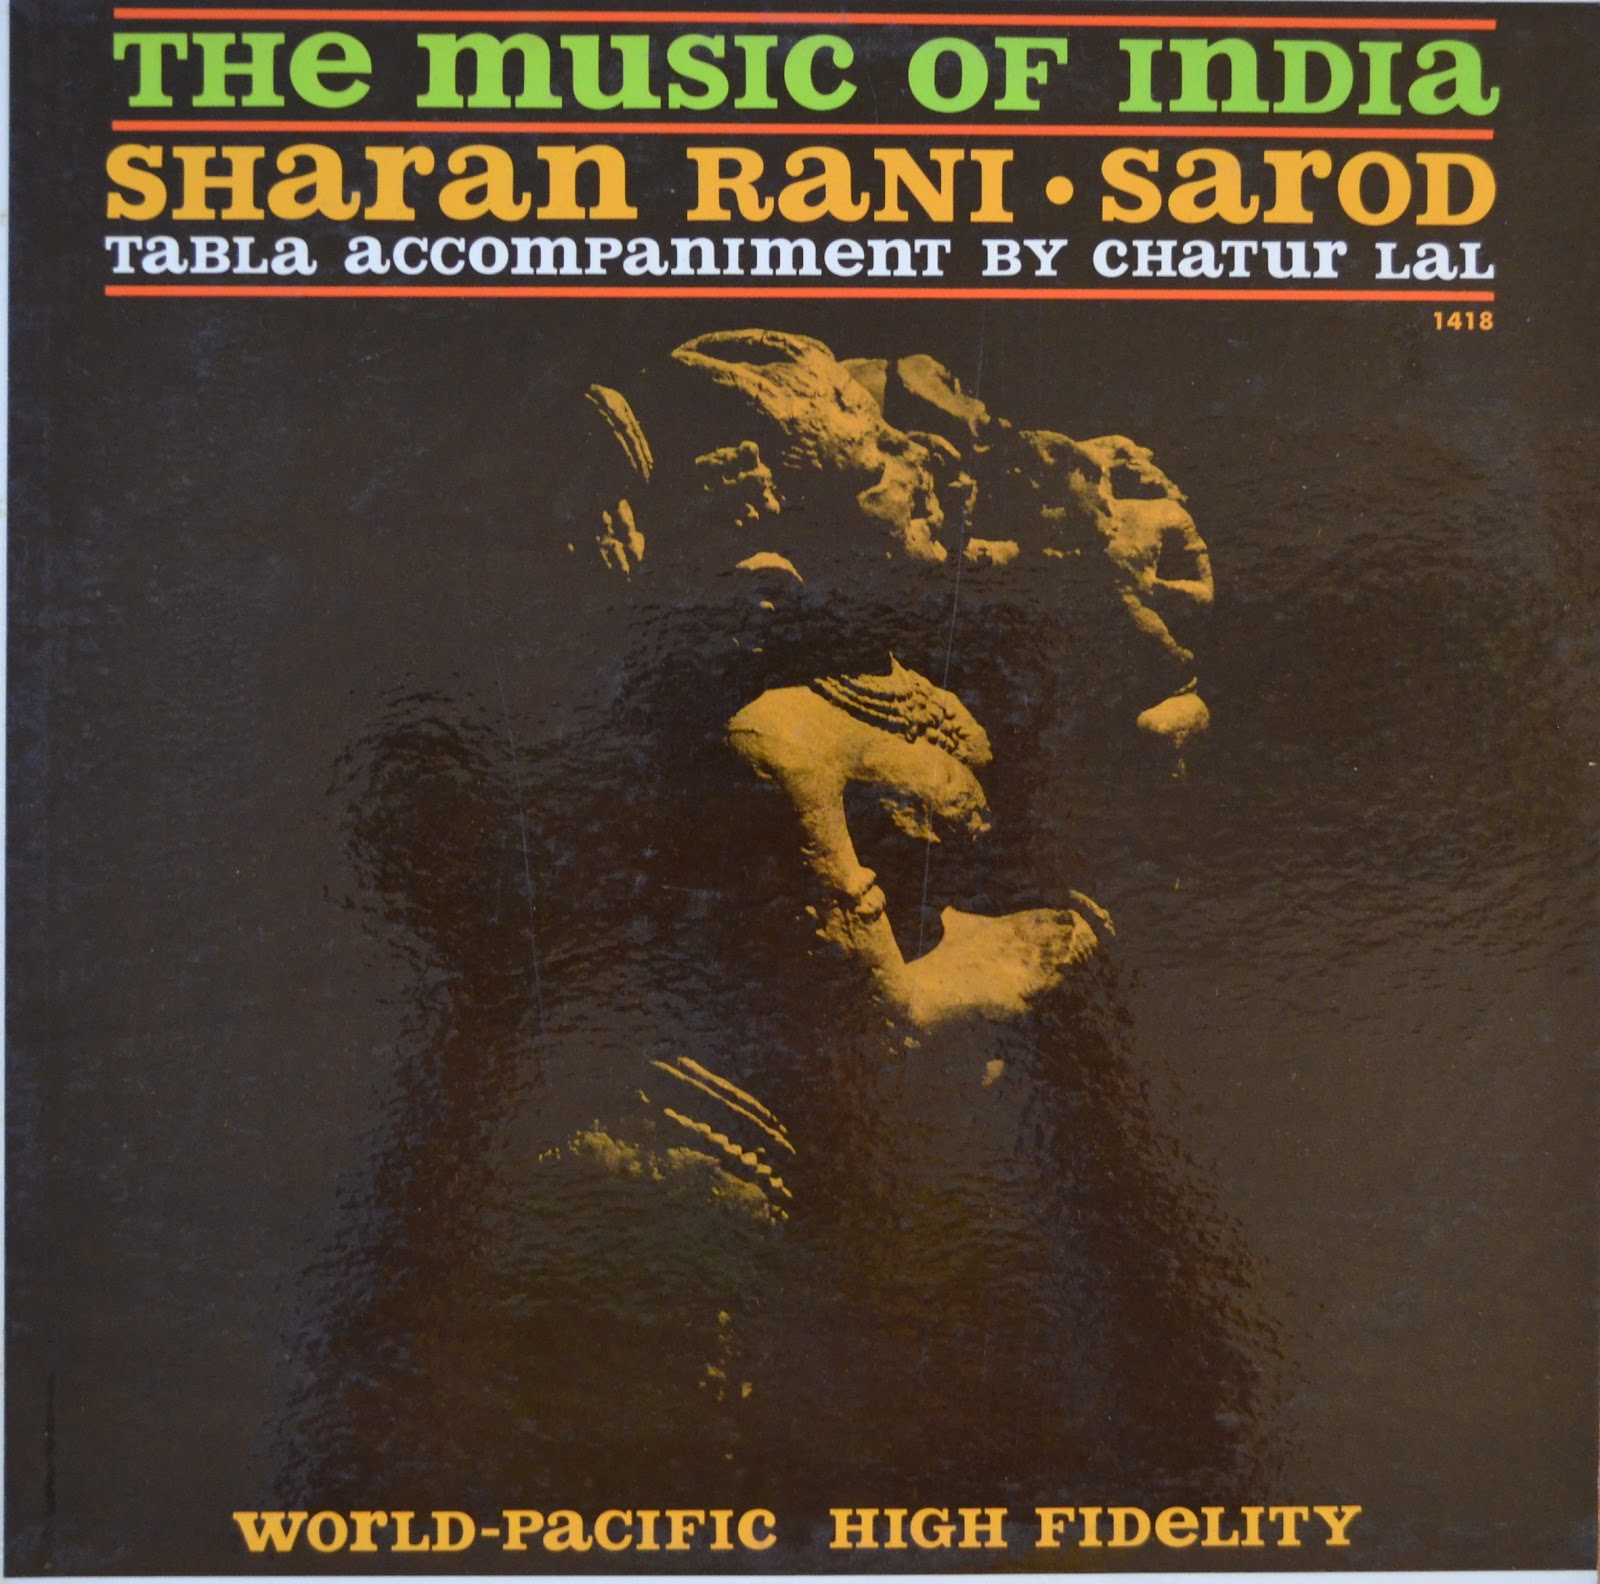 Ali Akbar Khan And Chatur Lal Accompanied By Shirish Gor Music Of India Morning And Evening Ragas